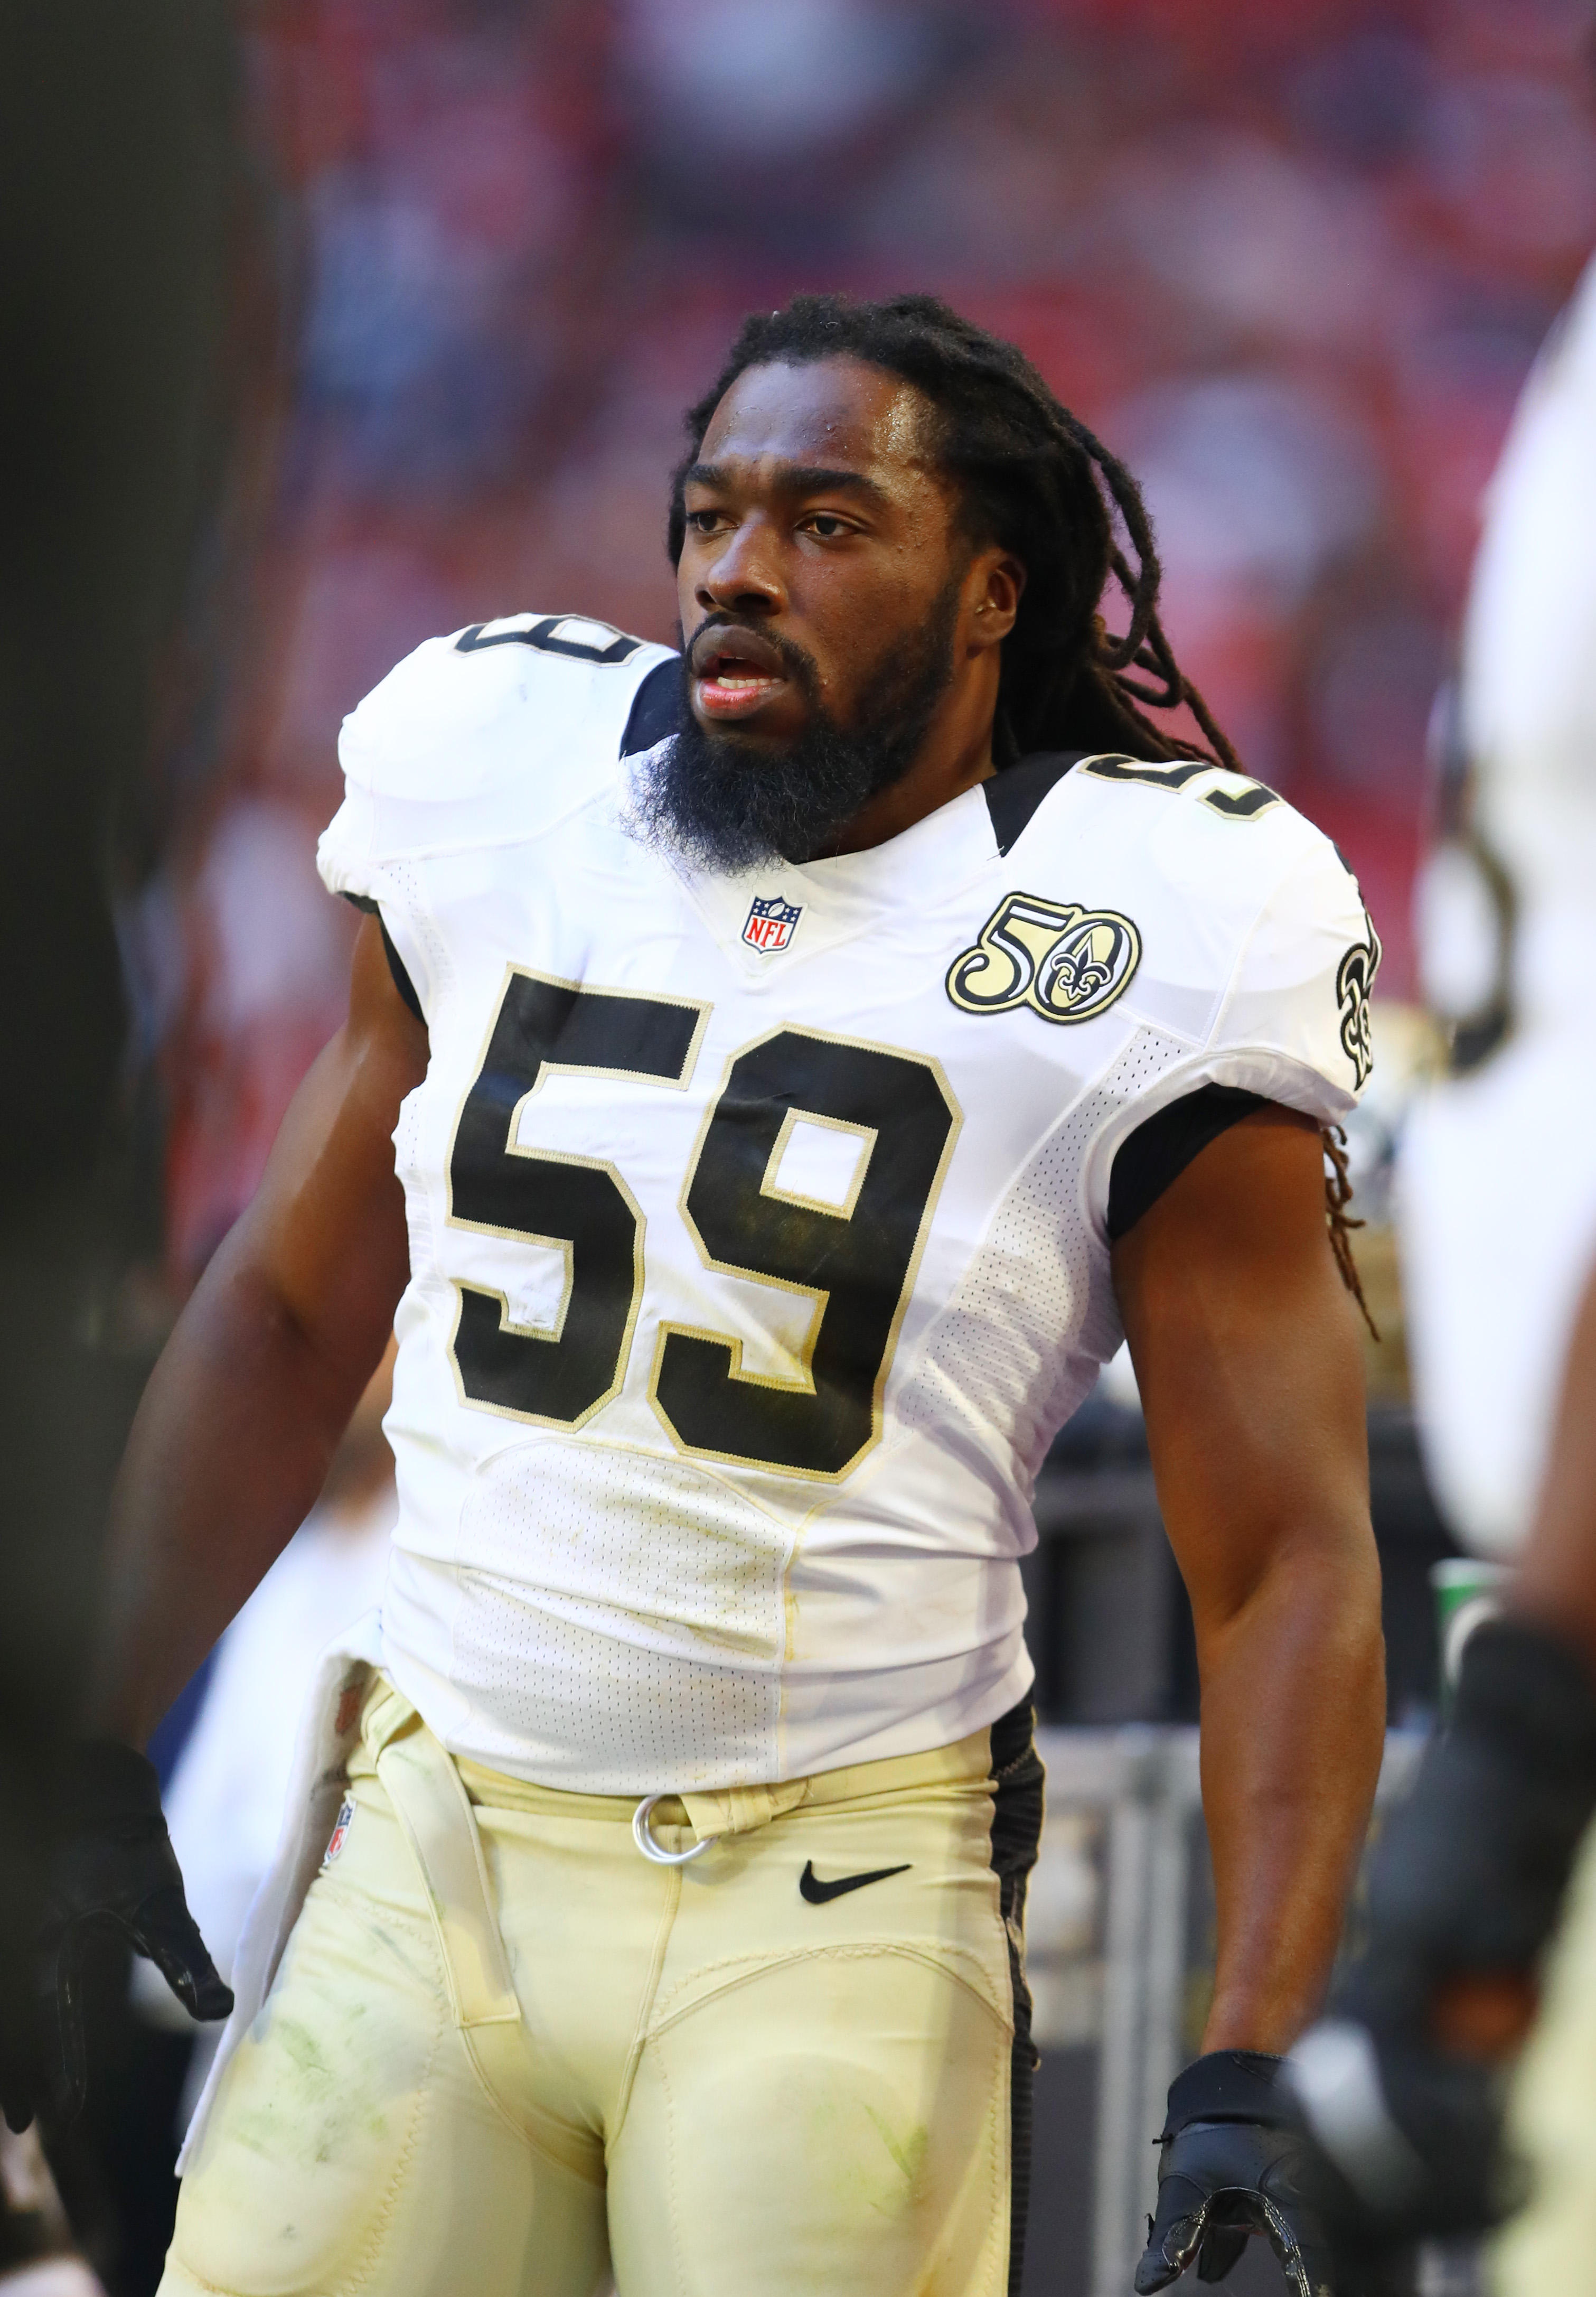 Dec 18, 2016; Glendale, AZ, USA; New Orleans Saints linebacker Dannell Ellerbe (59) against the Arizona Cardinals at University of Phoenix Stadium. The Saints defeated the Cardinals 48-41. Mandatory Credit: Mark J. Rebilas-USA TODAY Sports